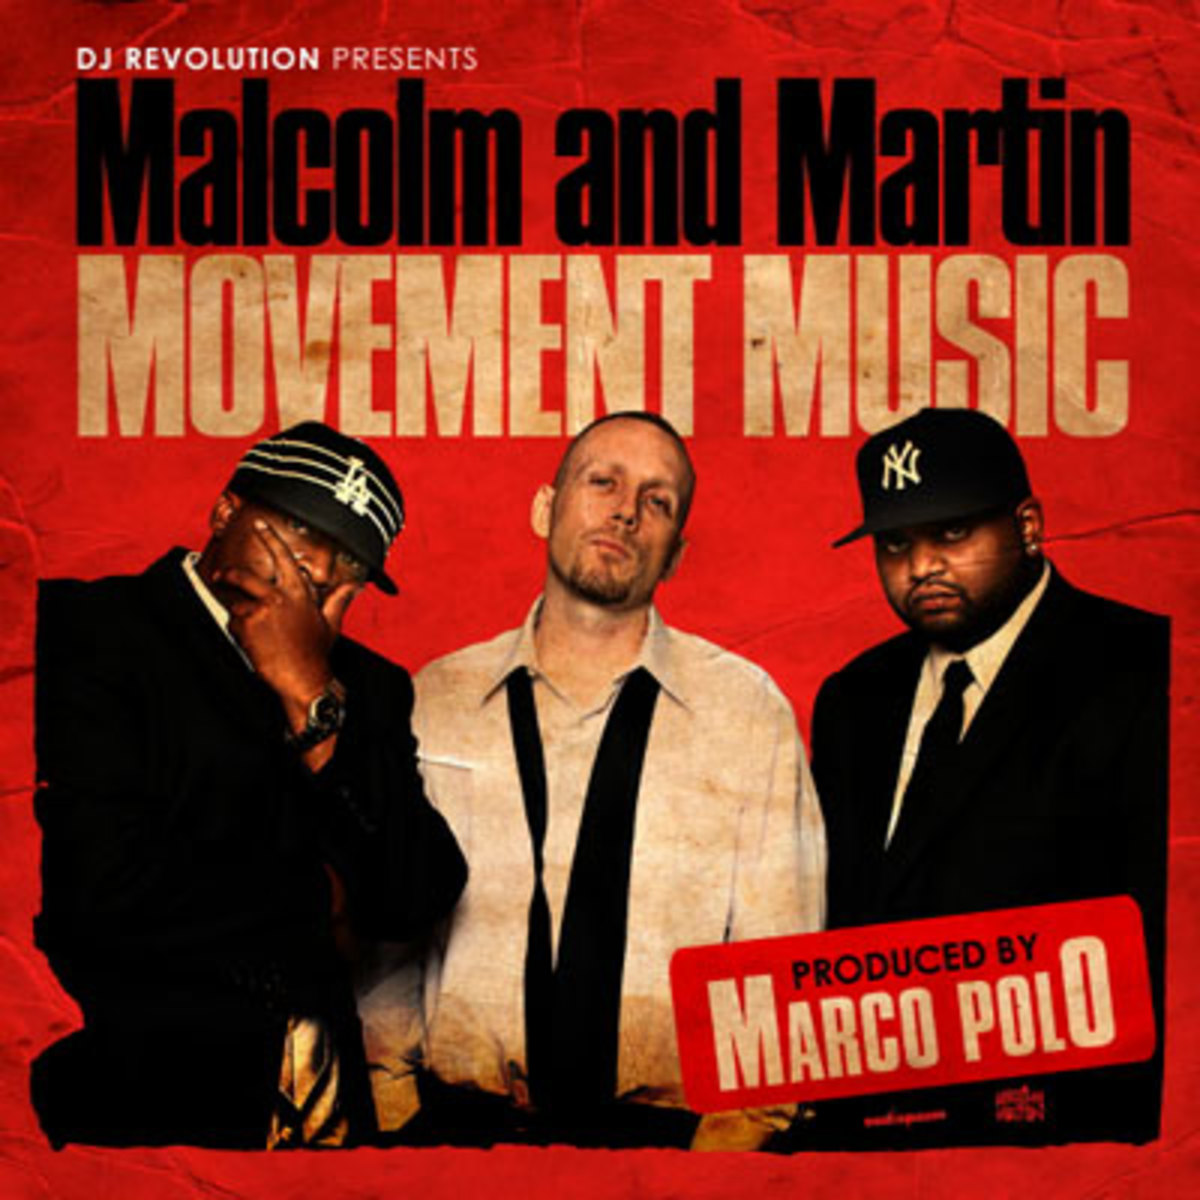 malcolmmartin-movementmusic.jpg